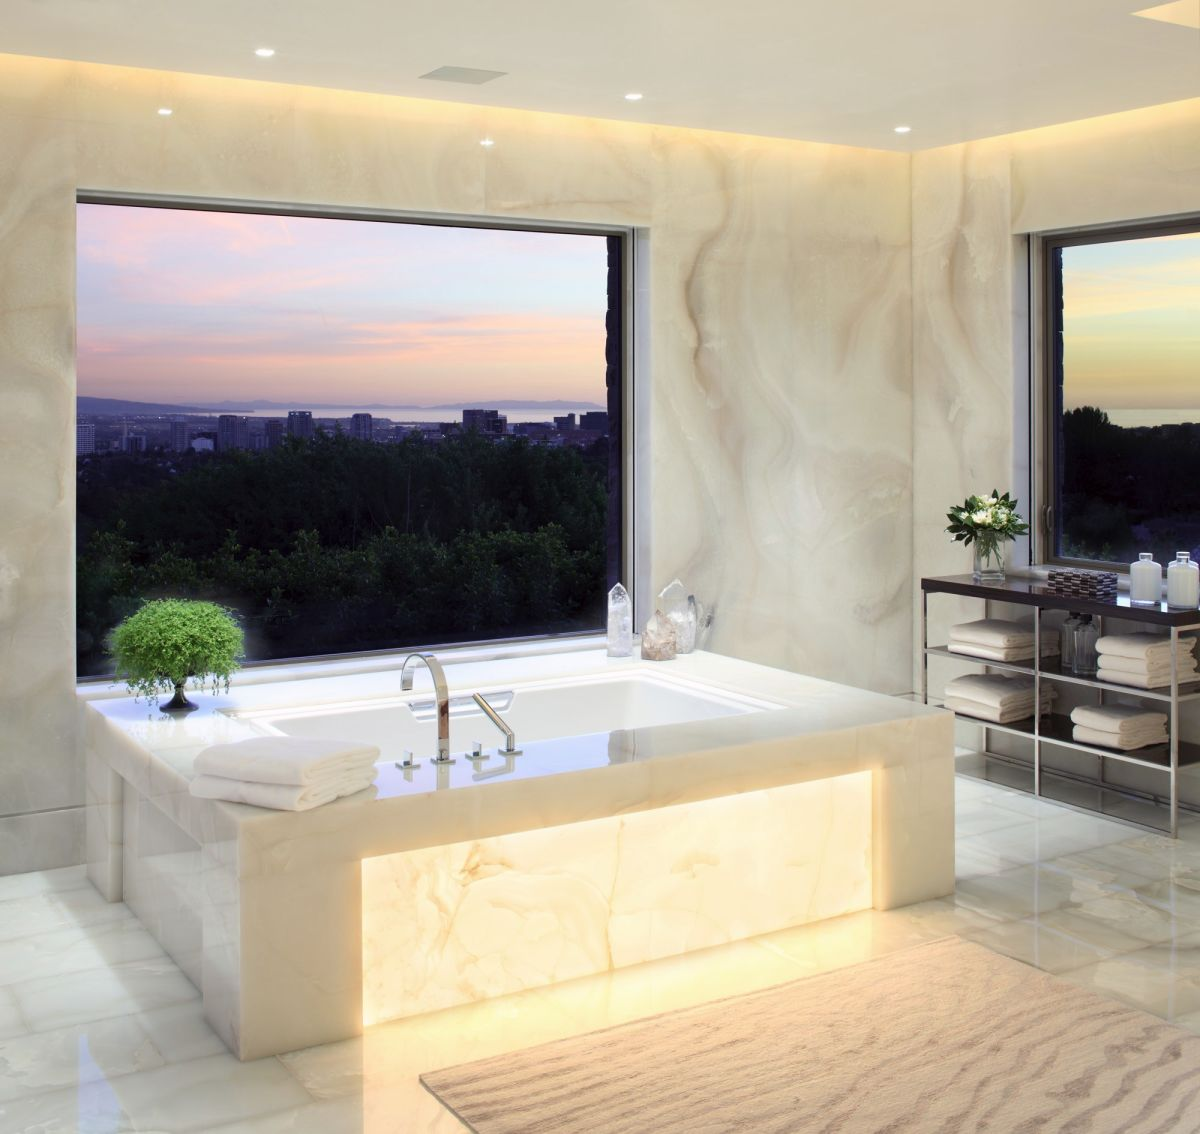 hillside-design-inspiration-bathroom-tub